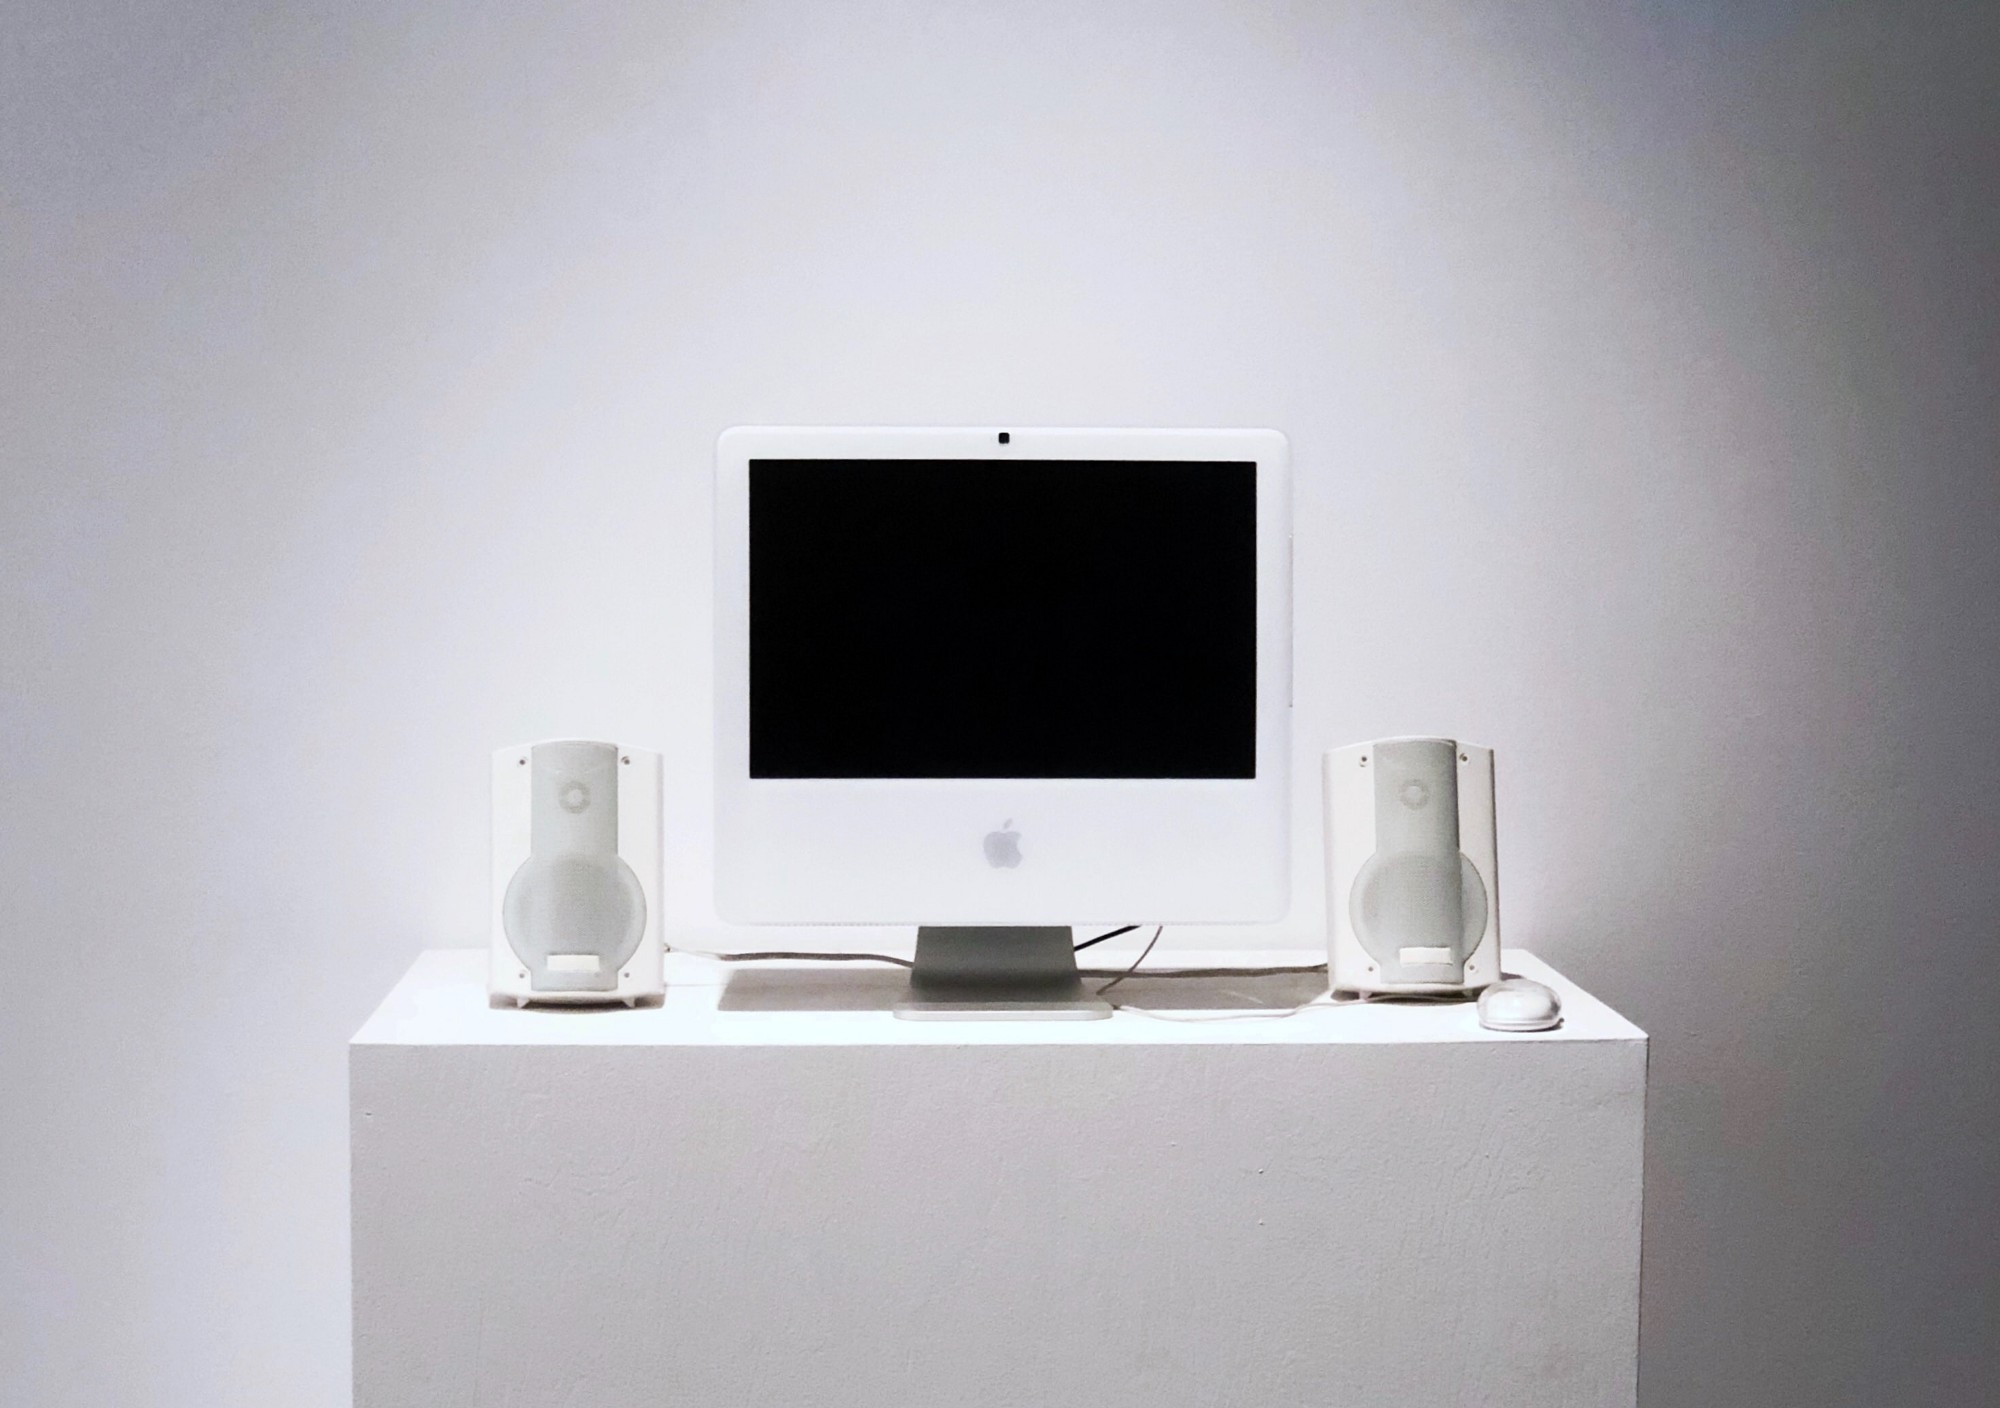 photo of an old iMac on a pedestal